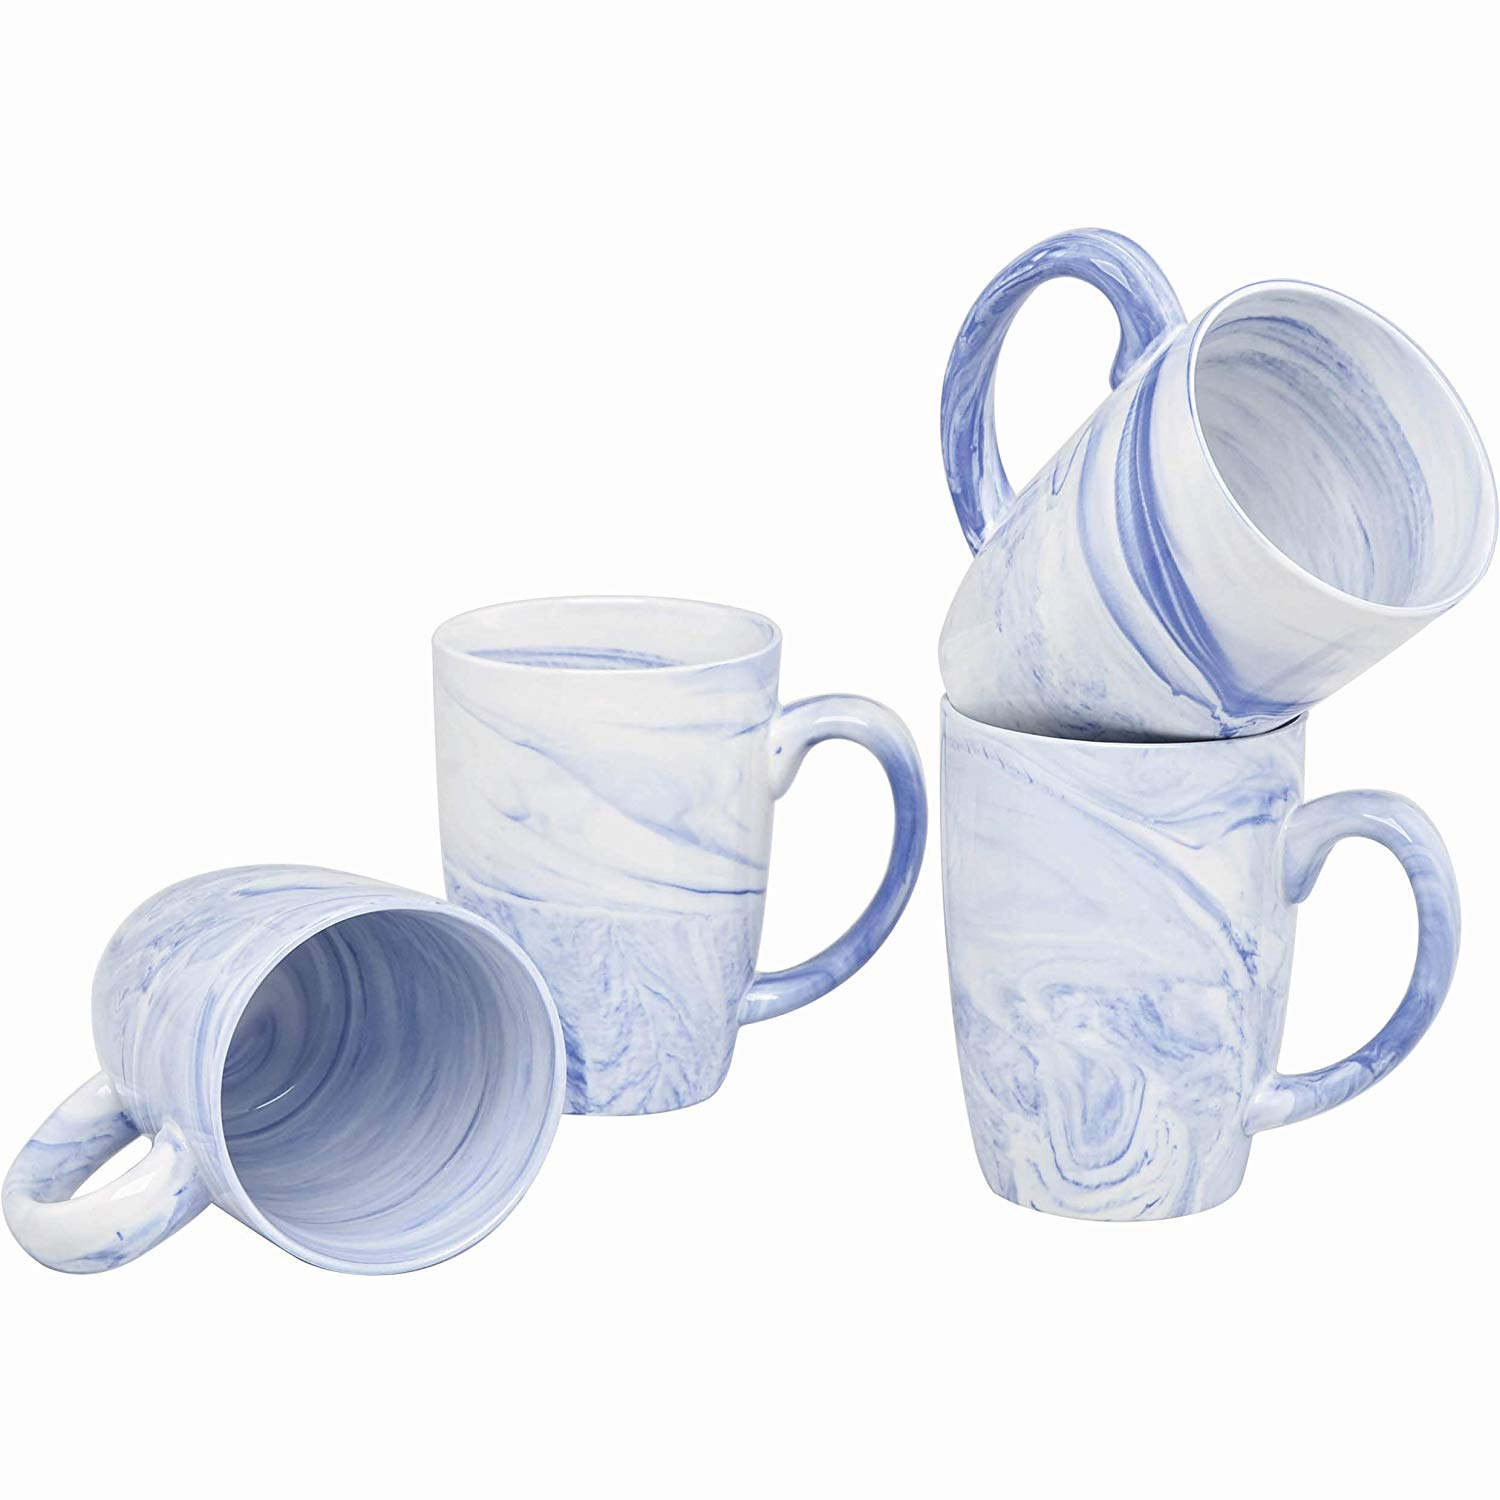 Top 10 Best Coffee Mug Sets Reviews Buying Guide 7